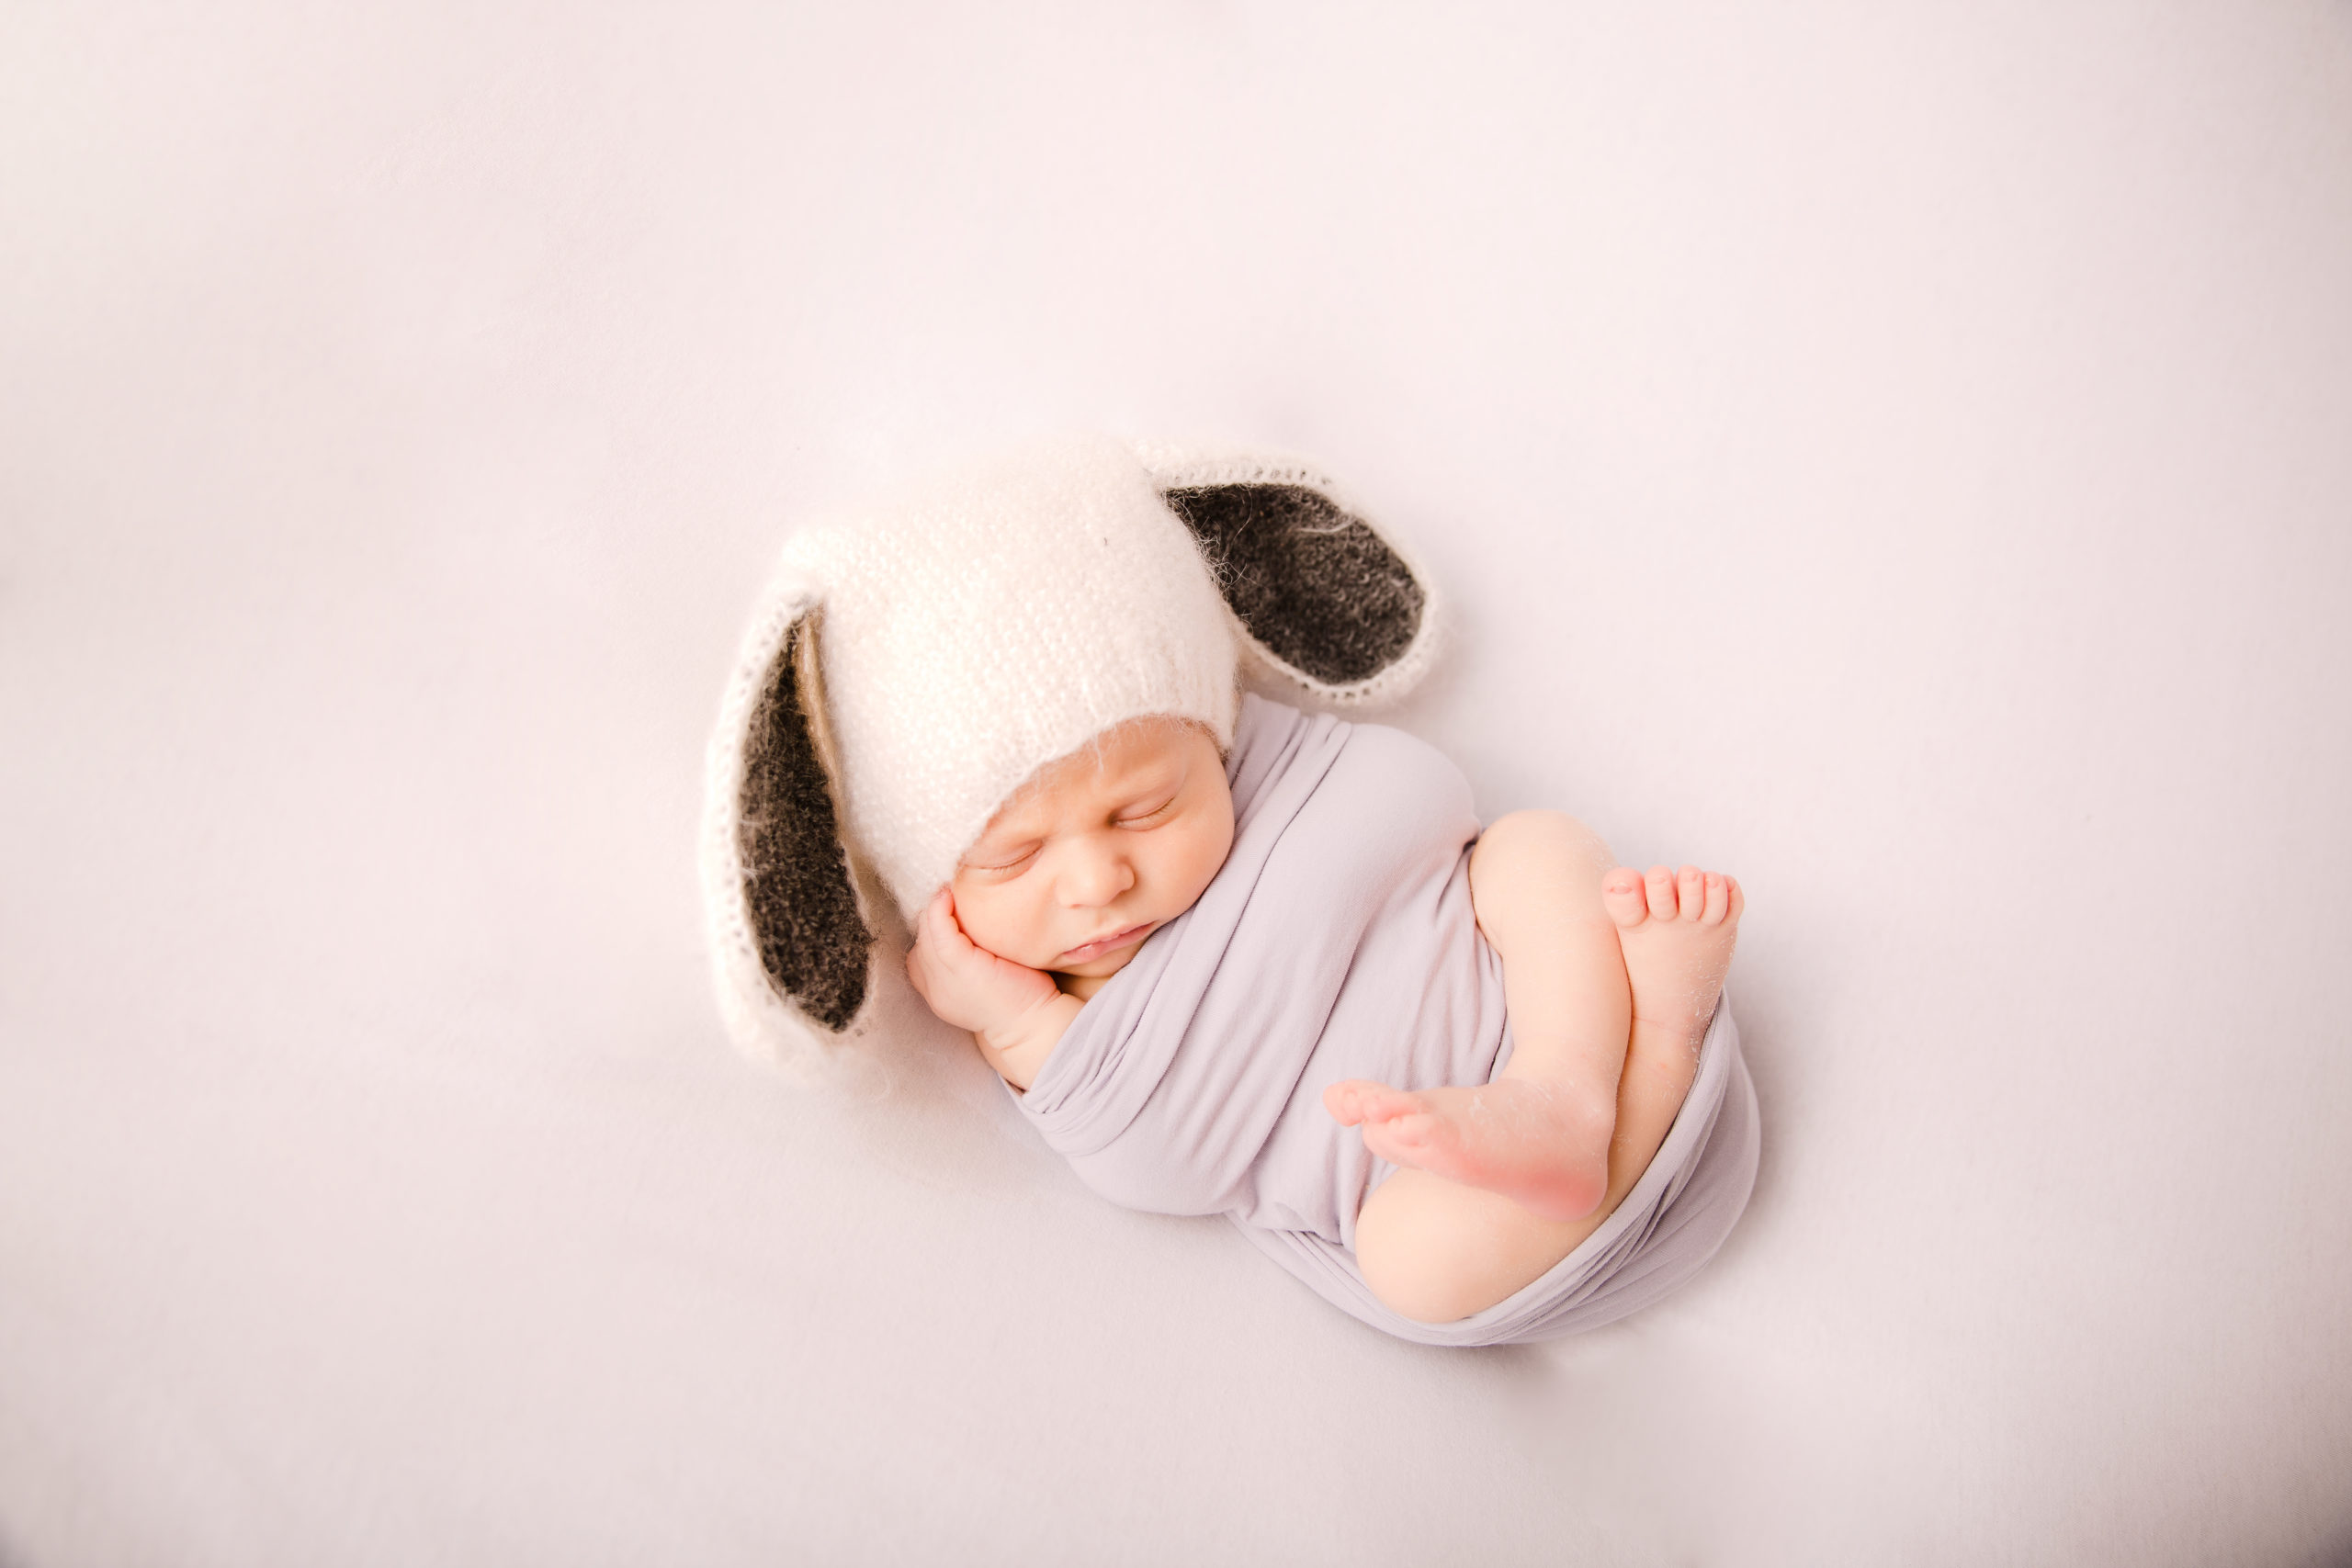 Newborn baby and Family Photographer in South West London Wimbledon Baby Boy in white hat on a white background